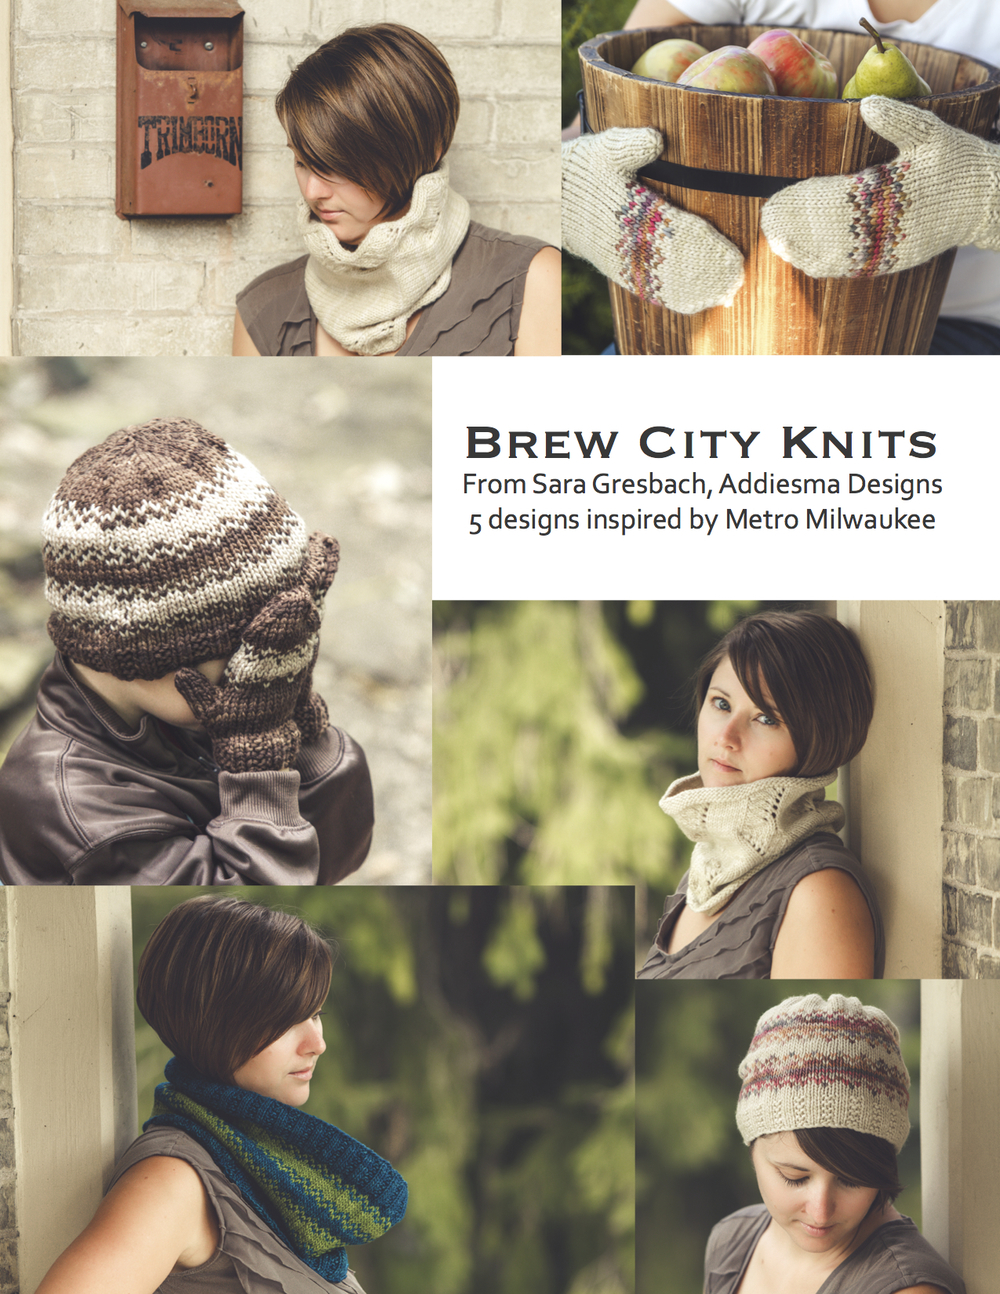 Brew City Knits Collection